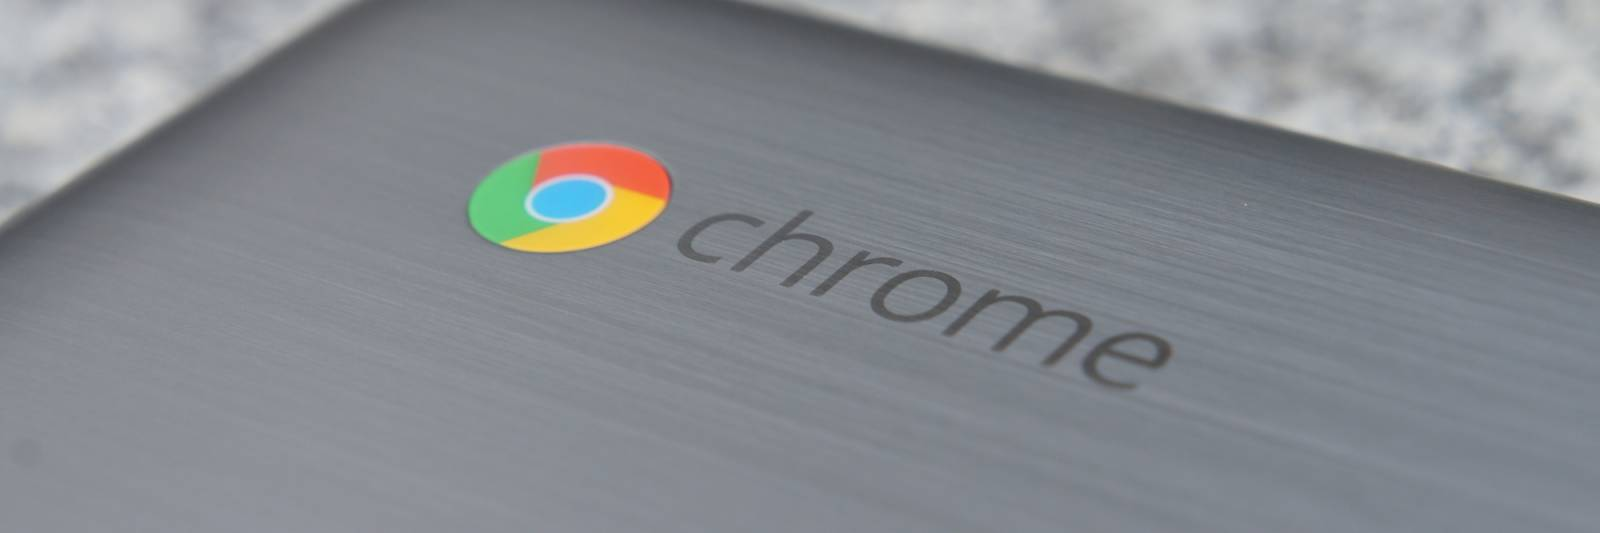 Google Introduces New Video Tools For Meet, Chrome Os